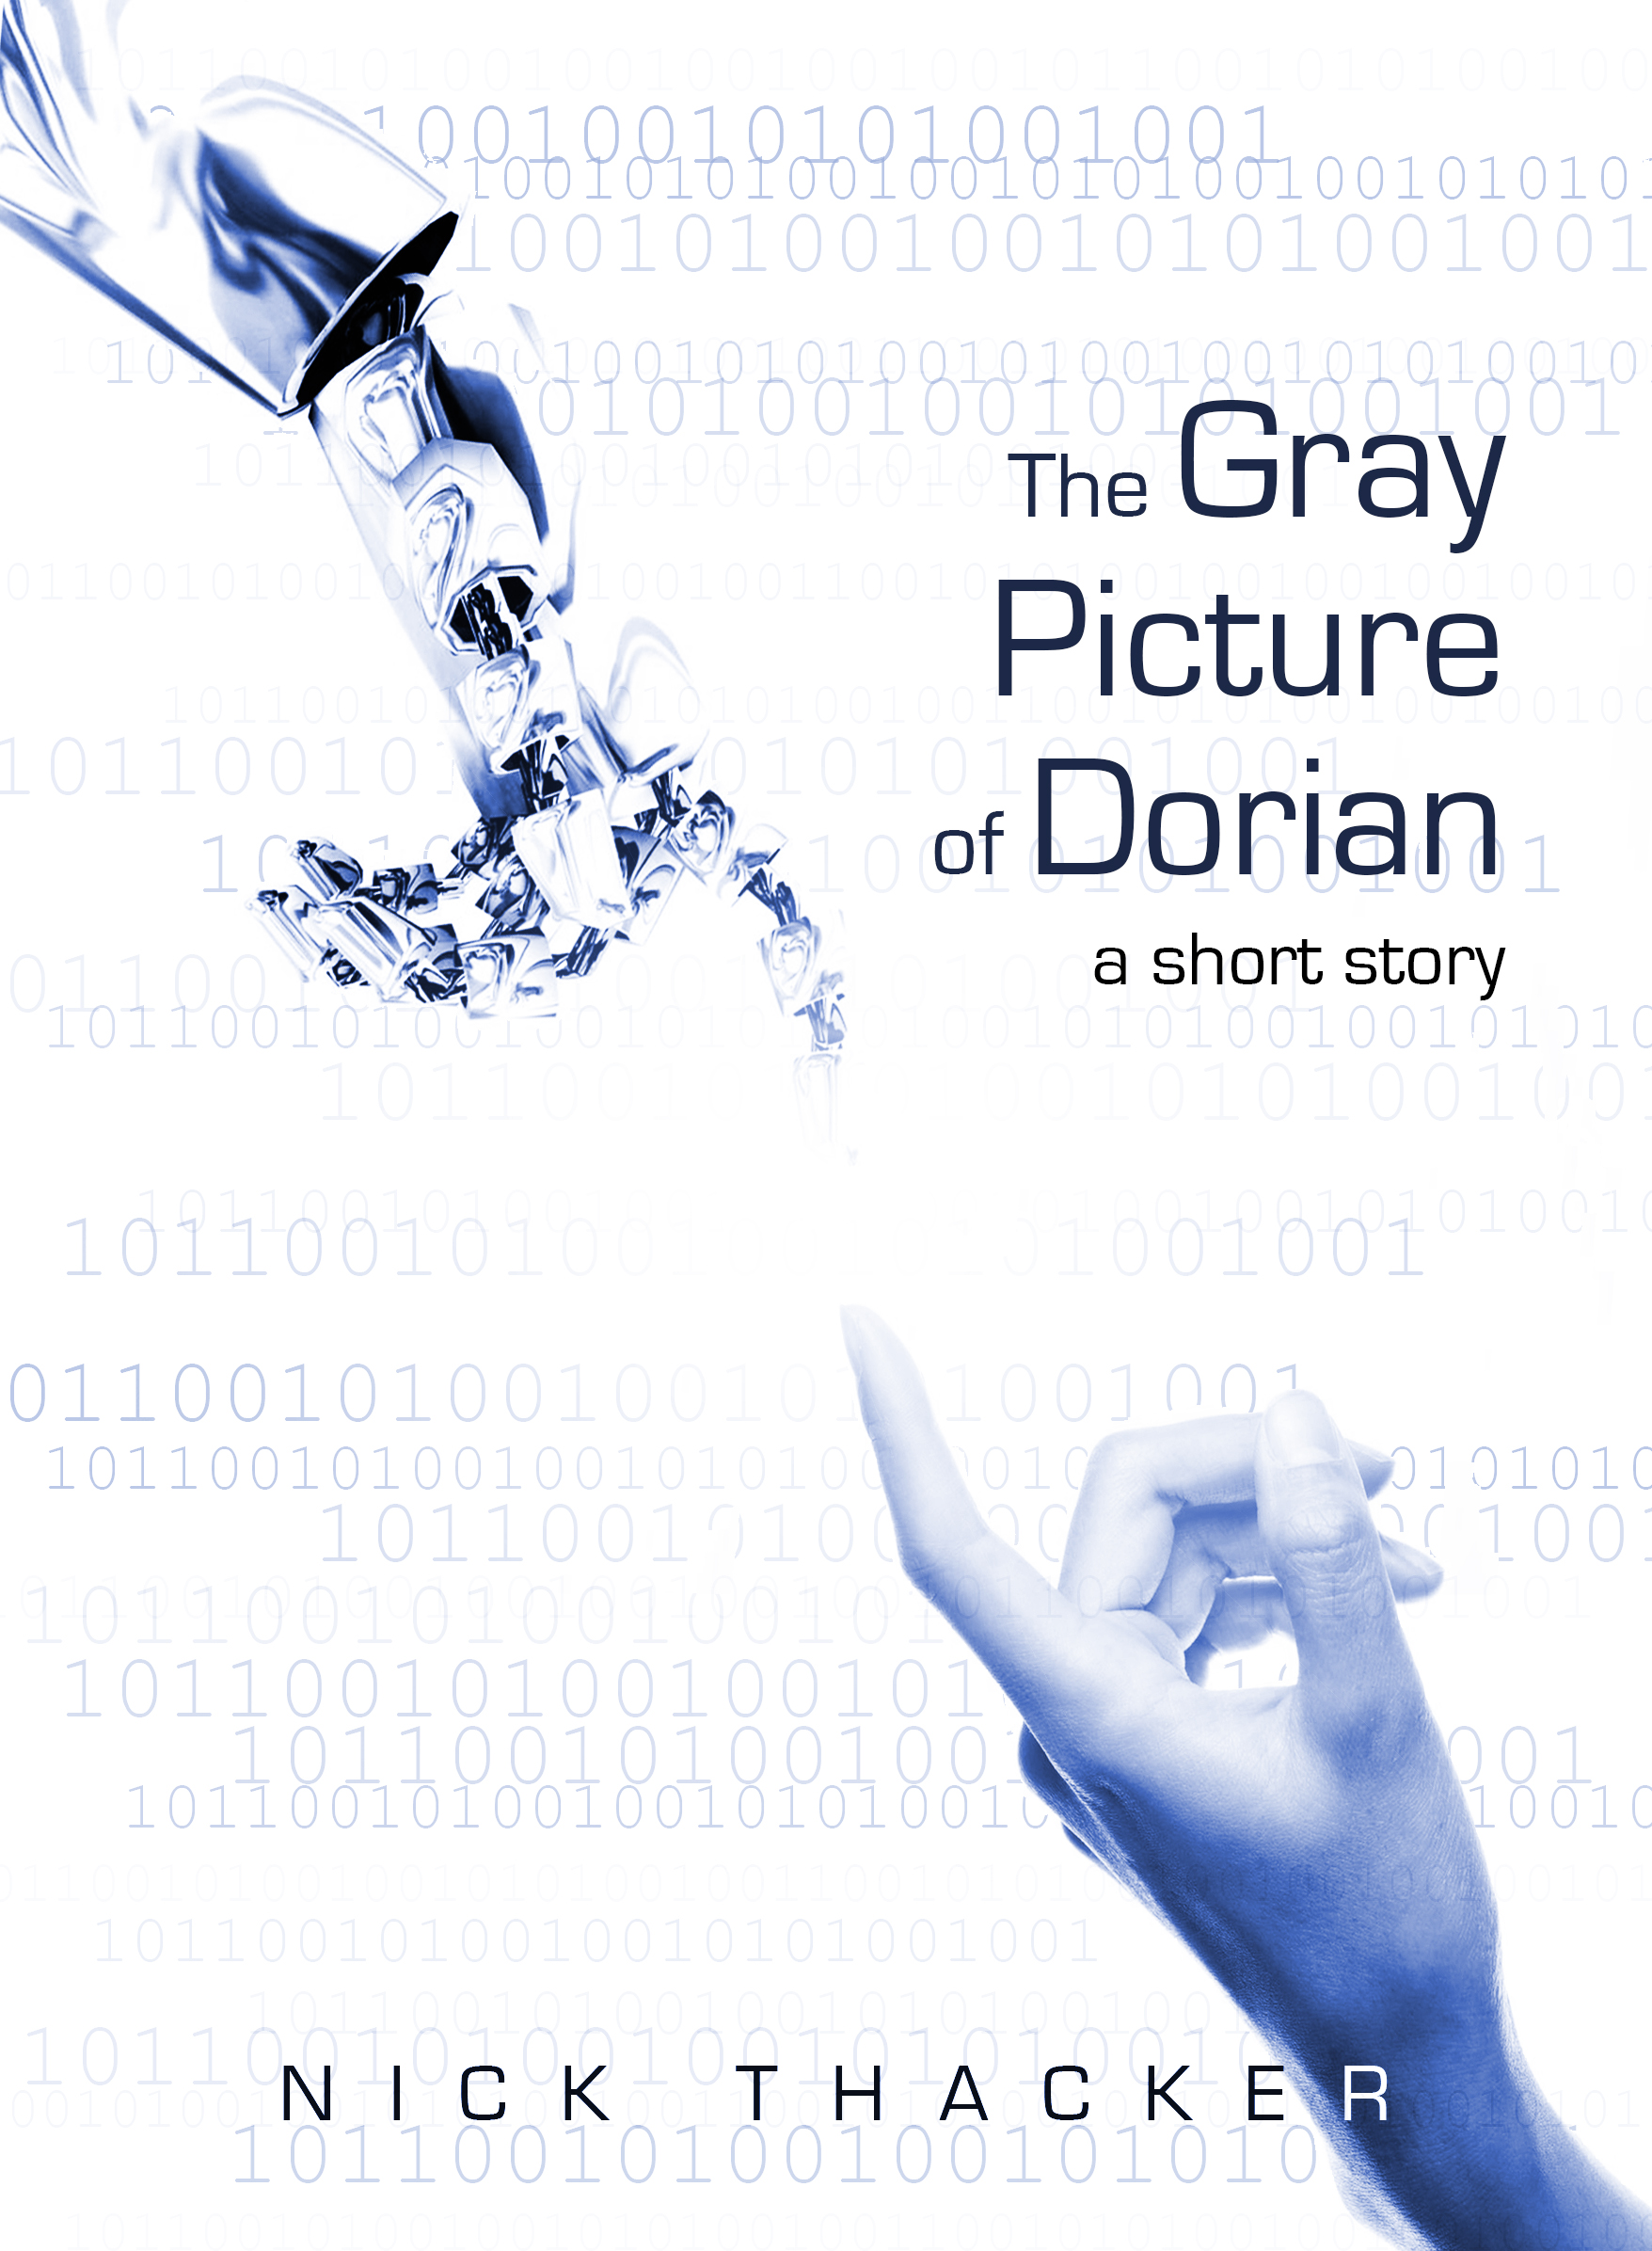 The gray picture of dorian